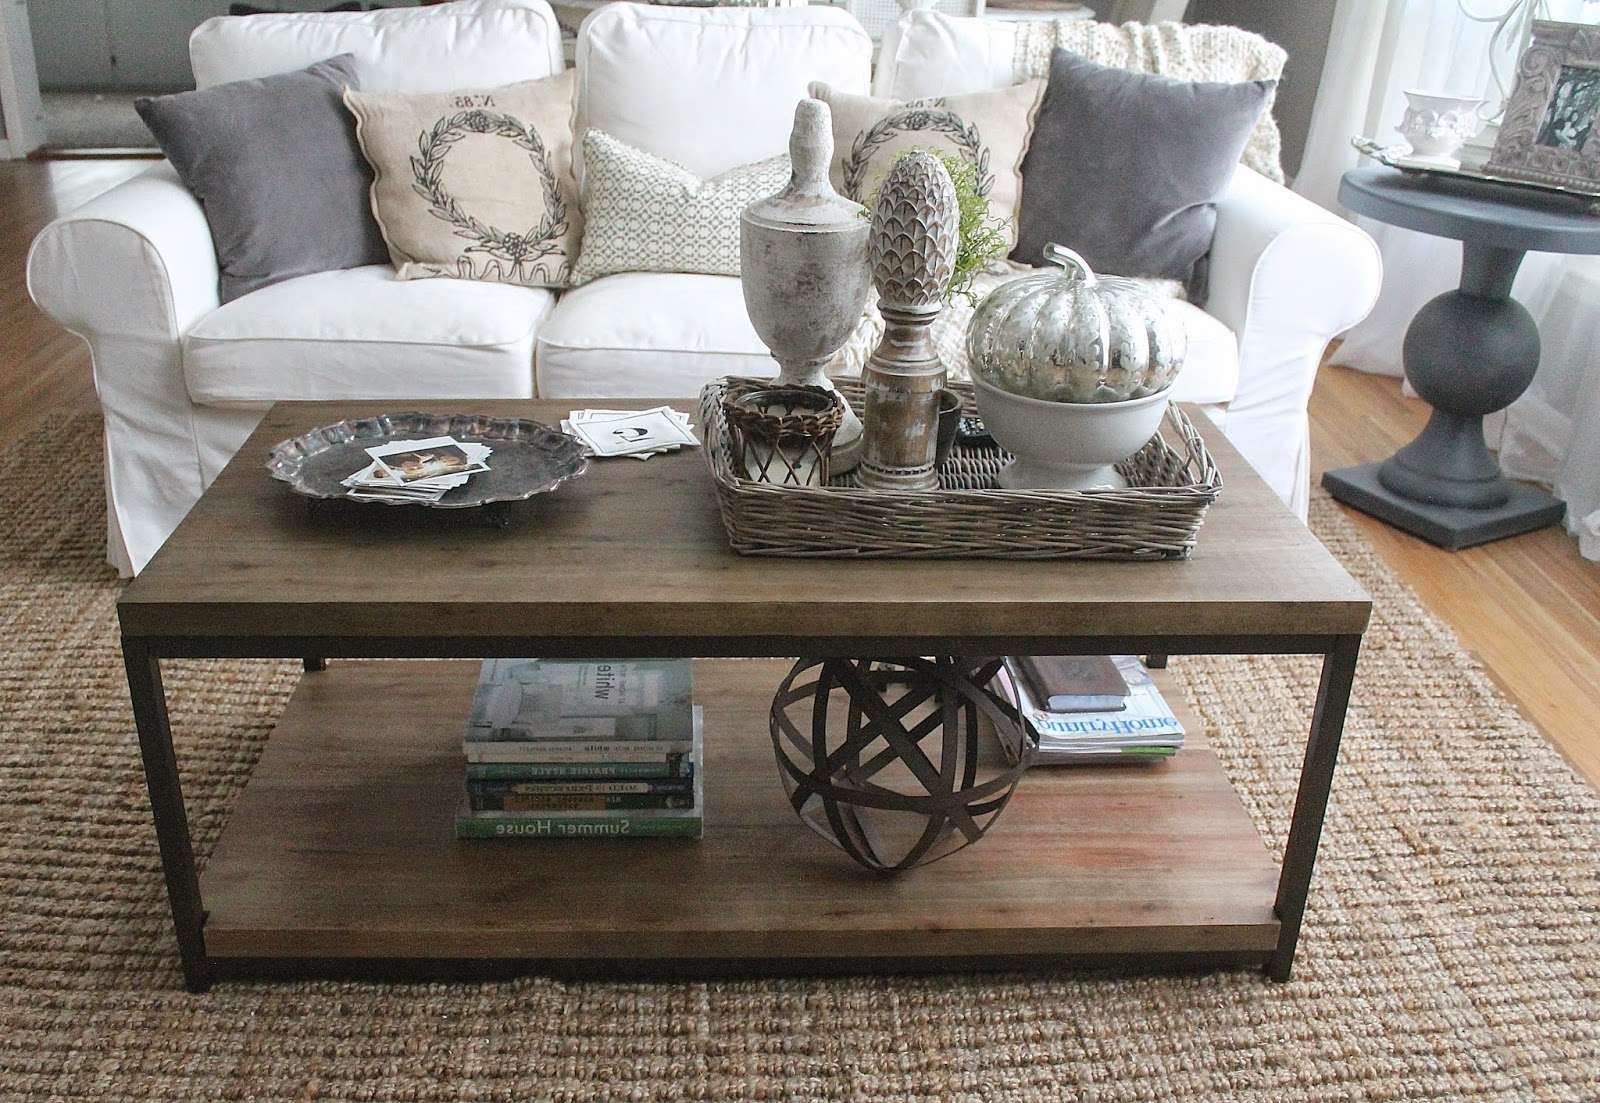 Top 20 of Rustic Christmas Coffee Table Decors